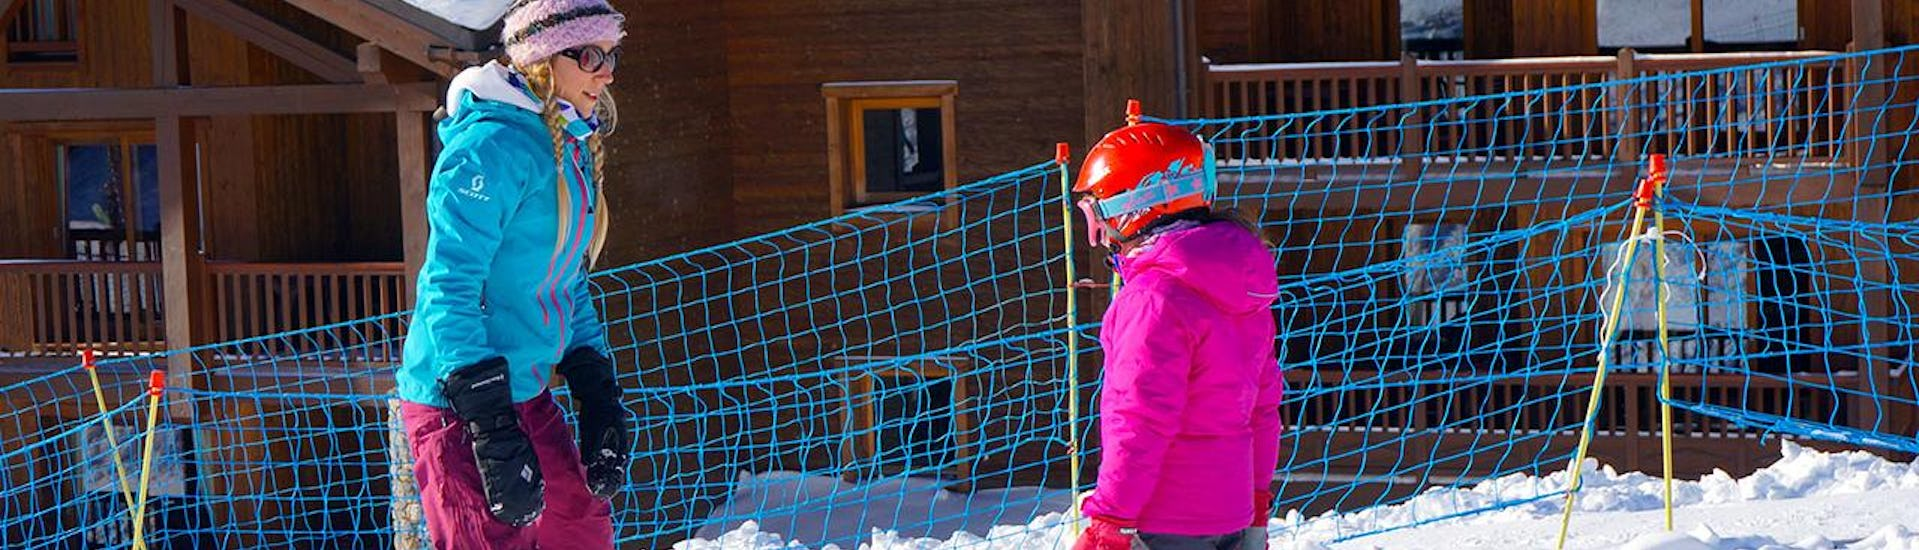 A child takes the first steps on skis during the Private Ski Lessons for Kids - All Ages and is guided by an experienced instructor from the ski school Snocool.